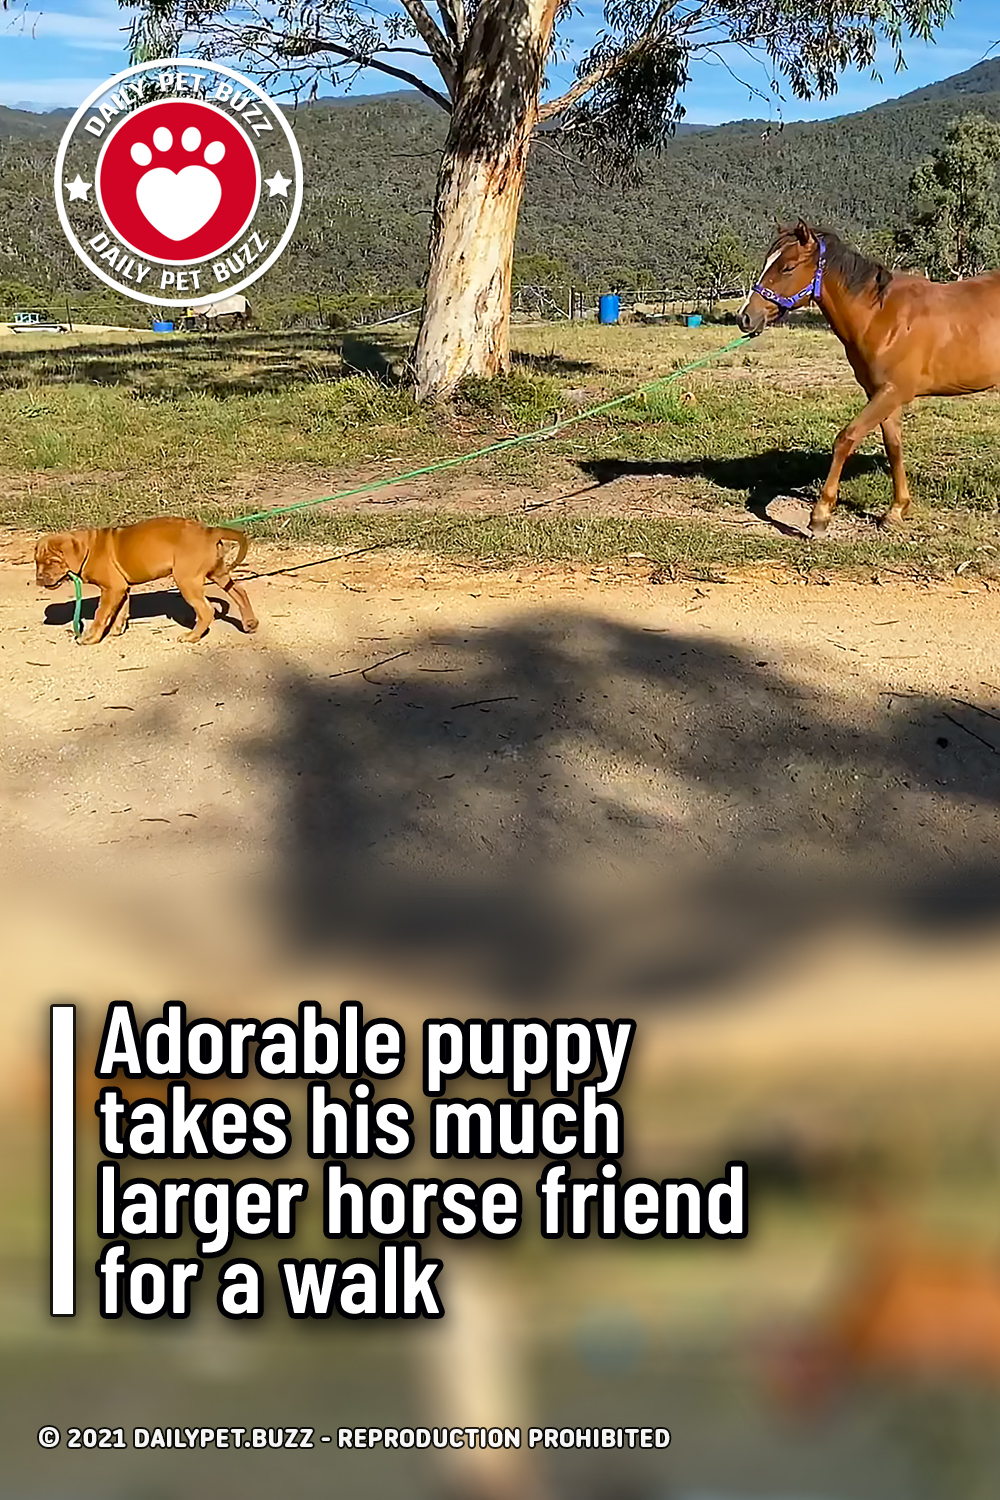 Adorable puppy takes his much larger horse friend for a walk